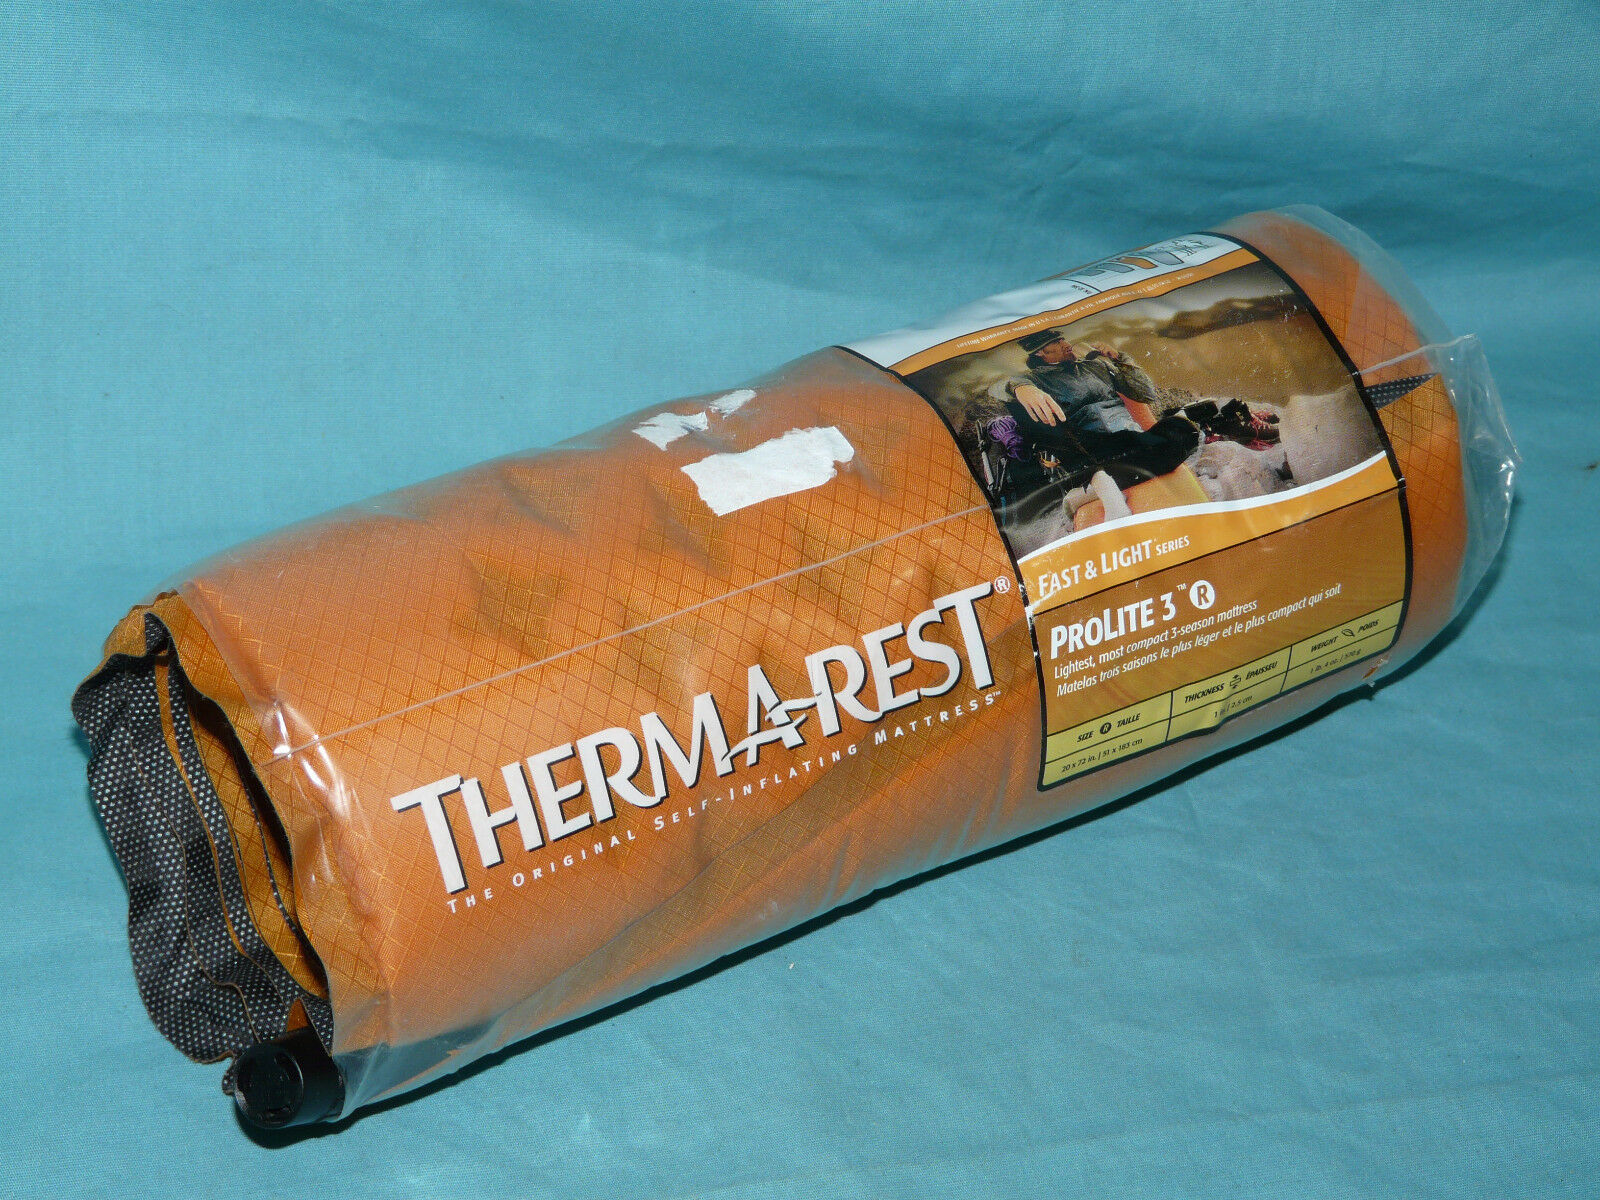 Cascade Designs THERMAREST ProLite 3 Self-Inflating Camping  Sleeping Pad NEW  ❅  online fashion shopping